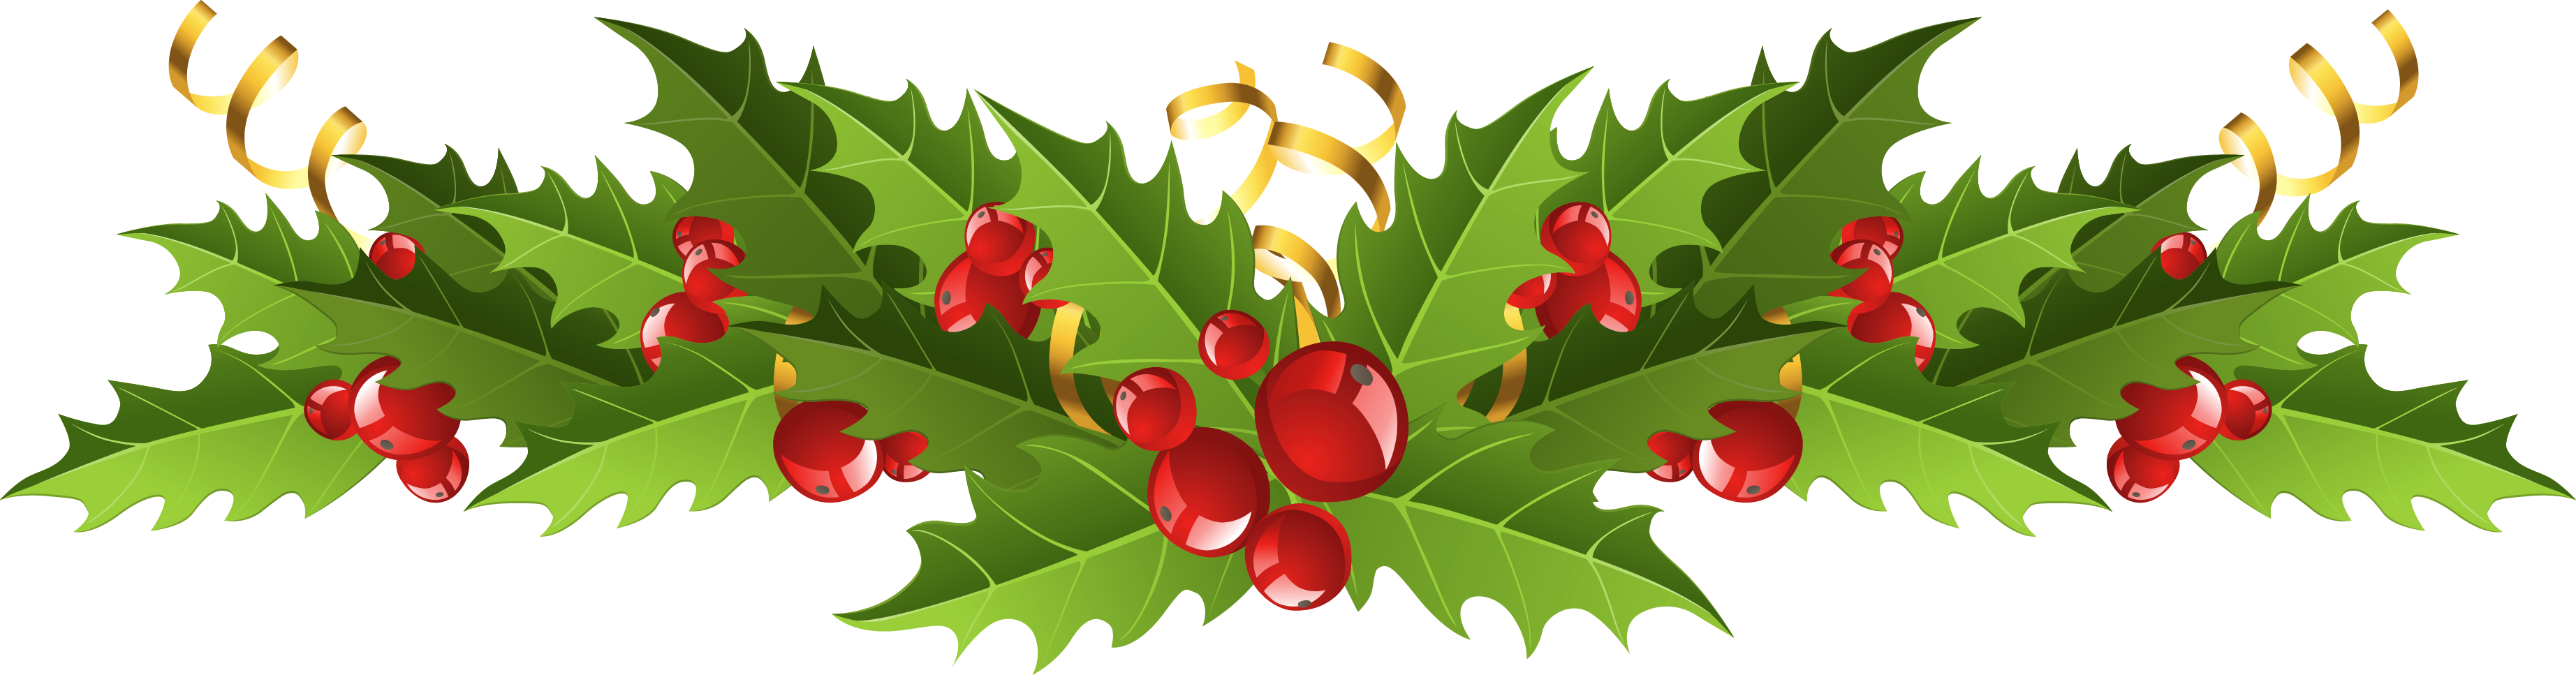 holly, mistletoe cliparts transparent download clip #28130